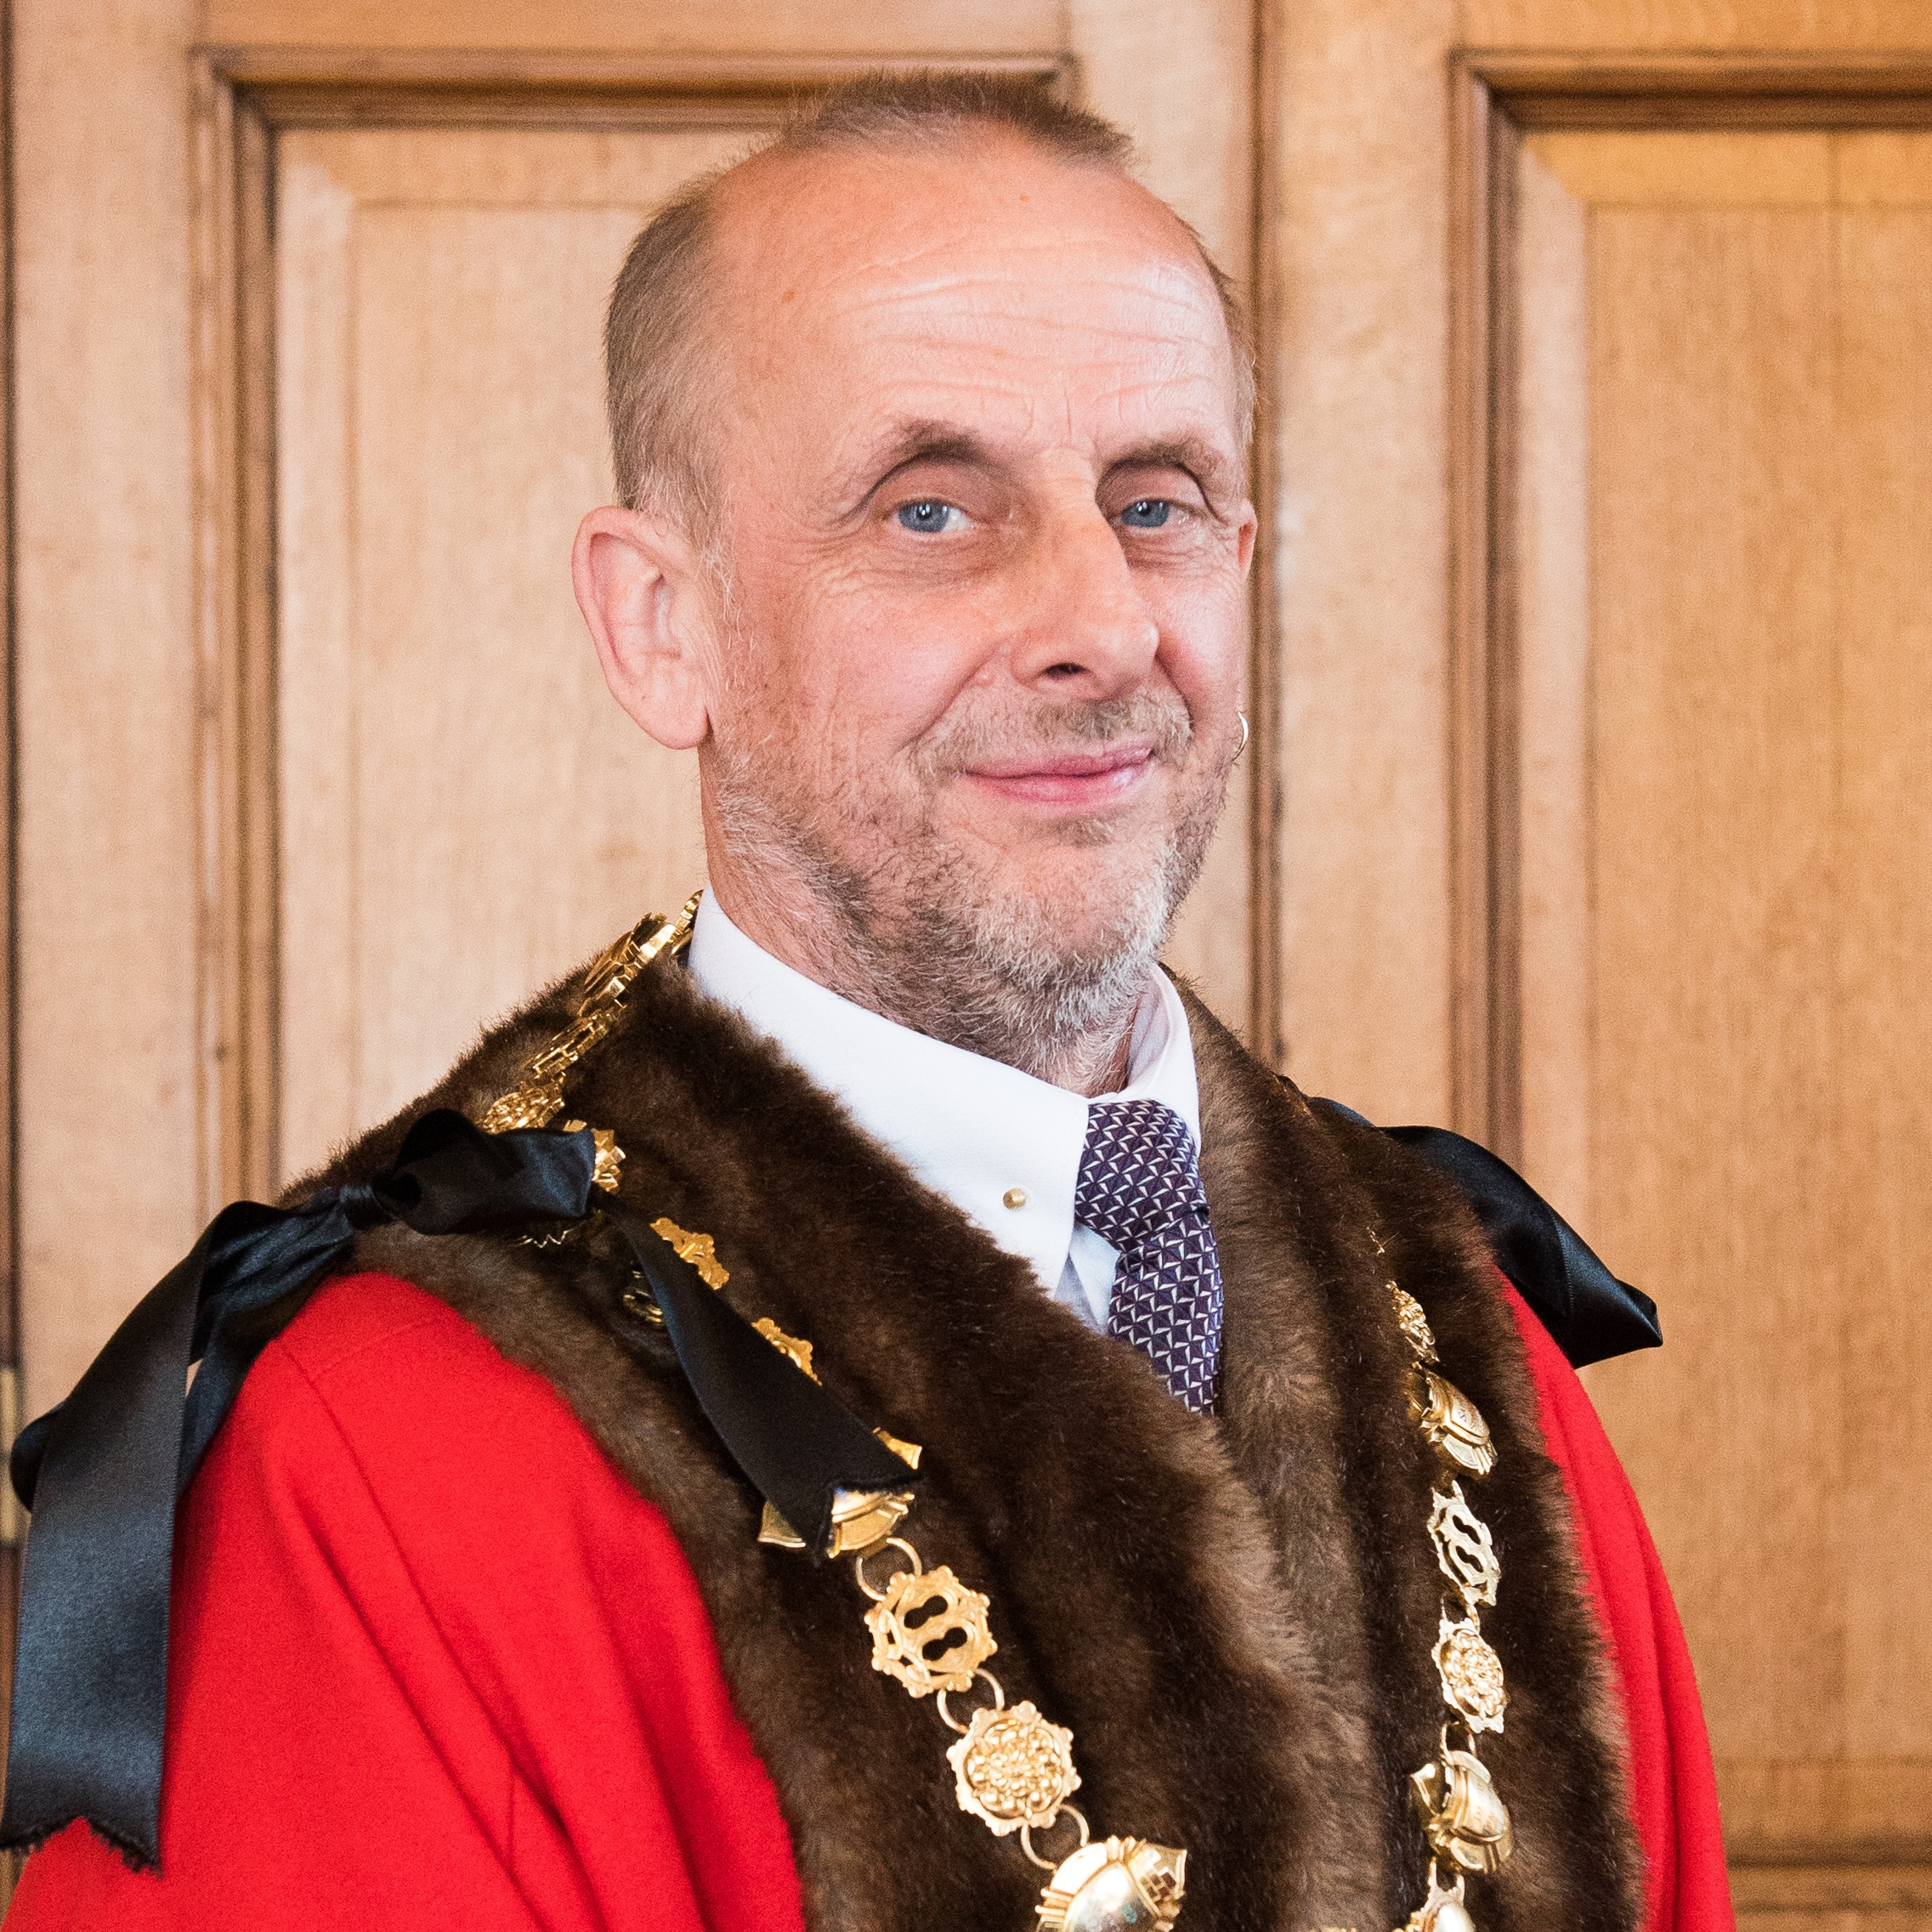 The Mayor of Morley - ...